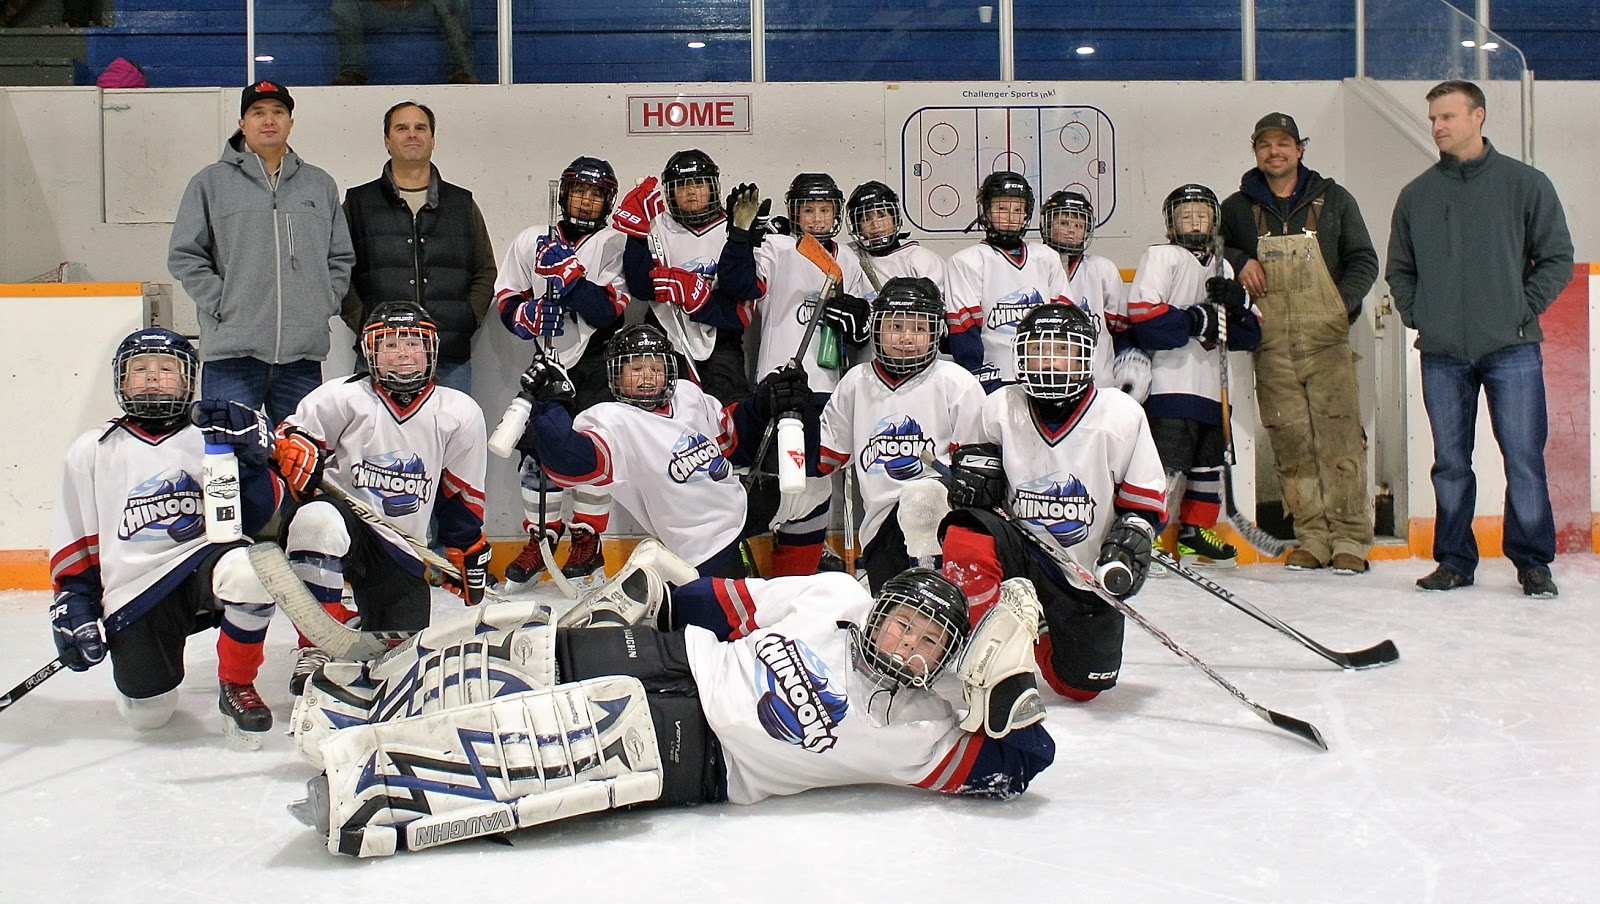 Pincher Creek Voice Pincher Creek 39 S Atom Chinooks Off To A Good Start At Home Tournament